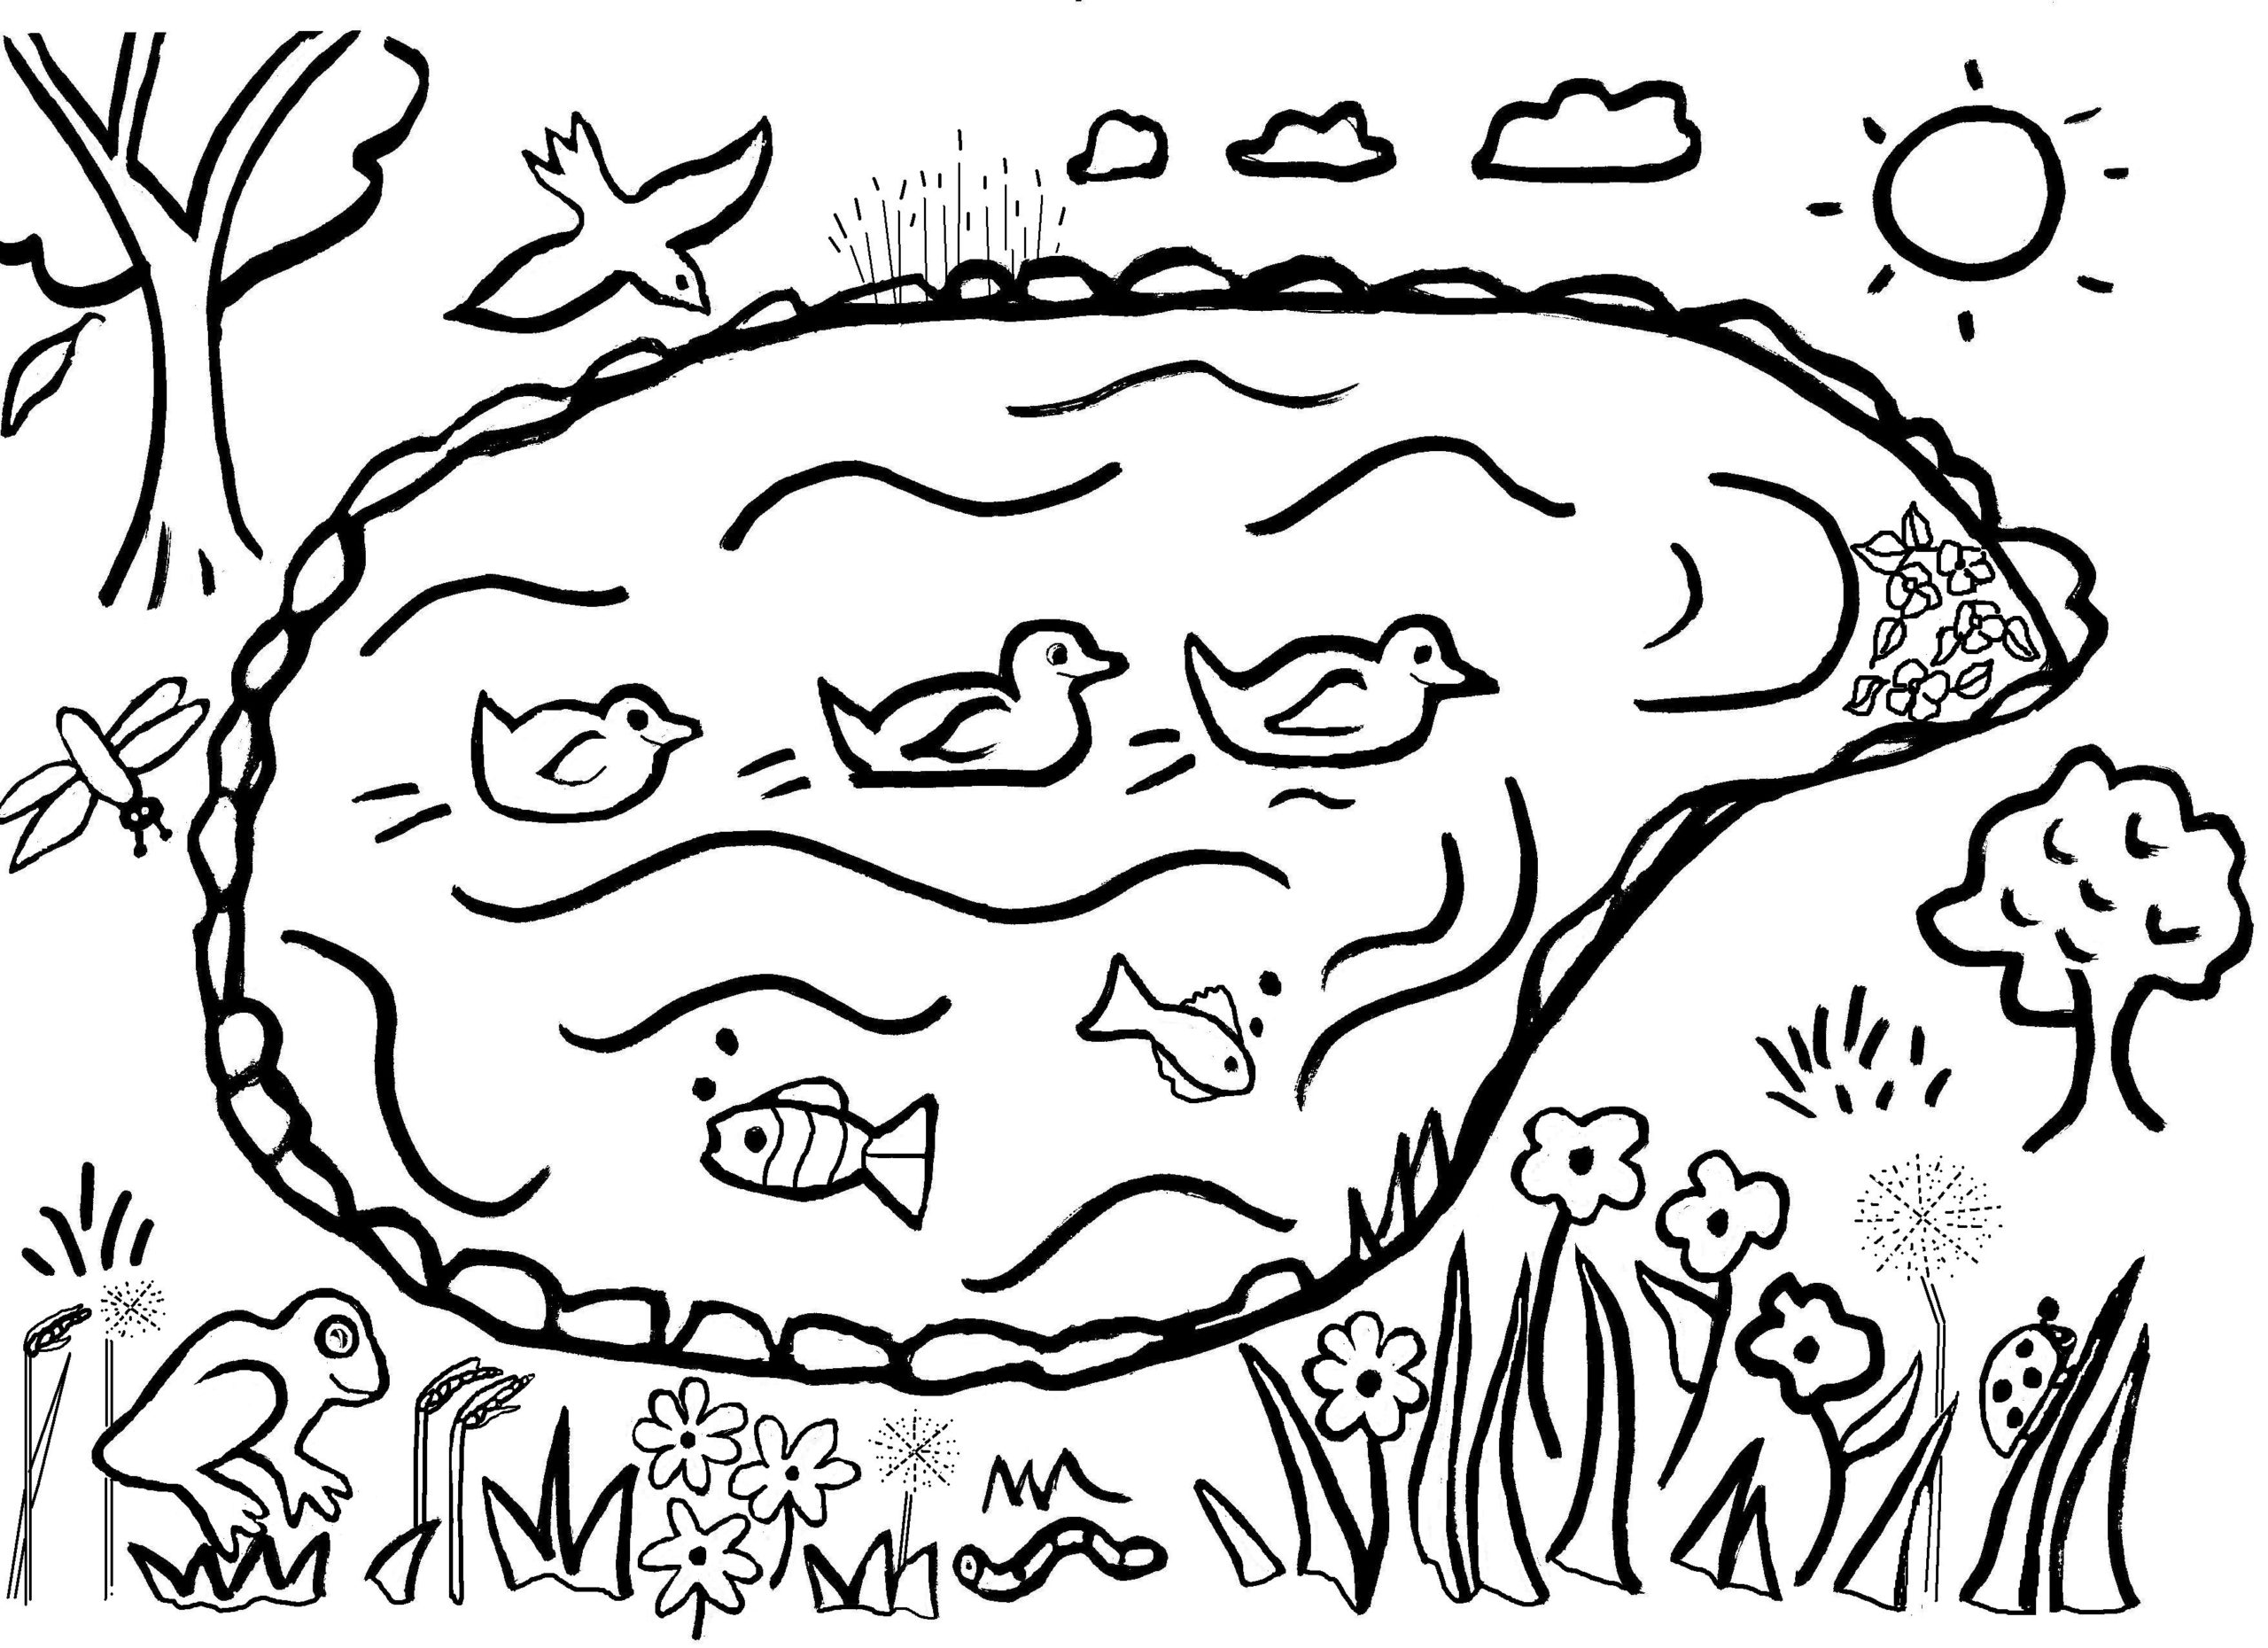 pond coloring pages pond coloring download pond coloring for free 2019 pond pages coloring